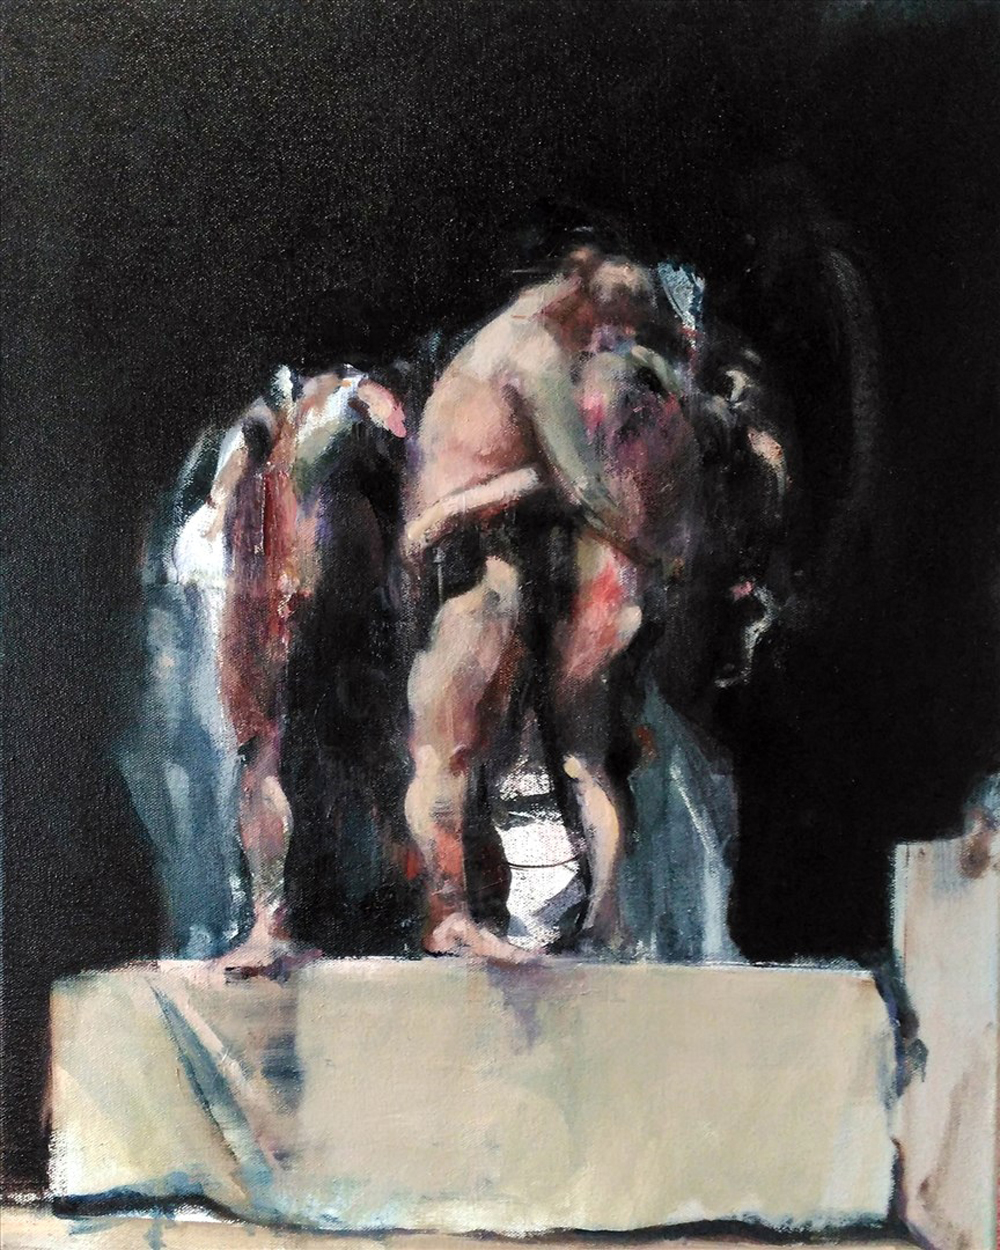 Sarah Shaw, The Waiting, Oil on linen, 50 x 45 x 2 cm,  http://www.sarahshaw.co.uk